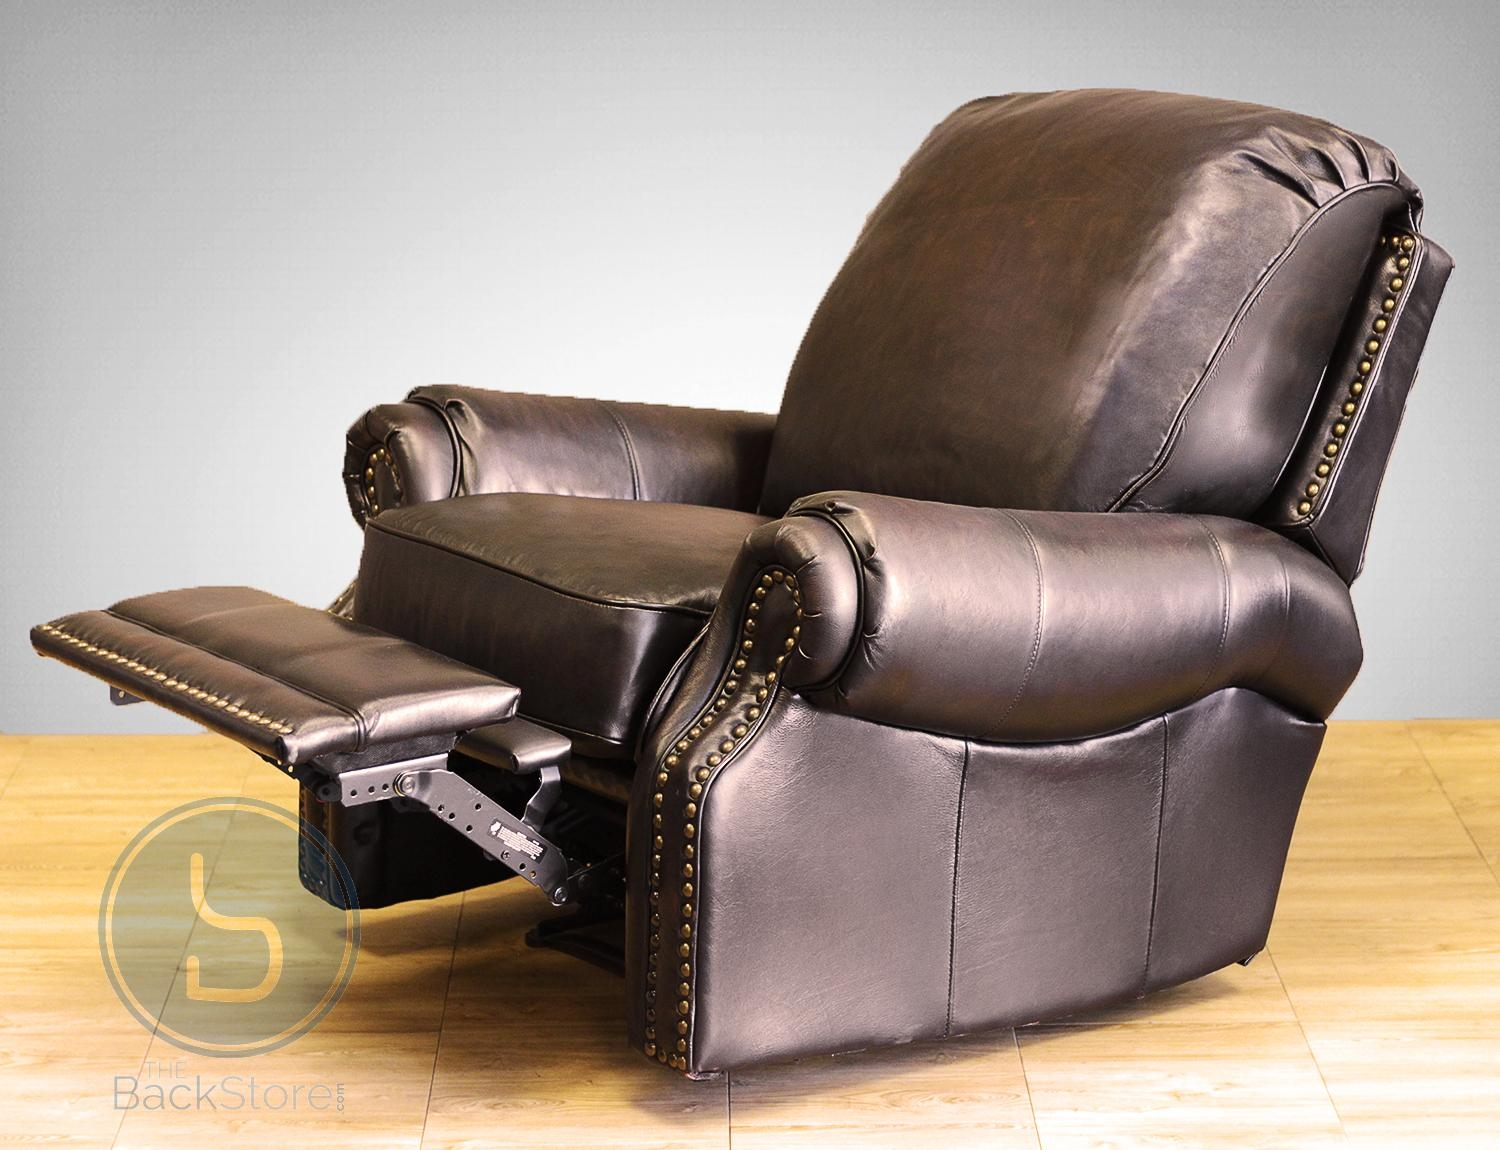 Barcalounger Premier Ii Leather Recliner Chair – Leather Recliner Inside Barcalounger Sofas (Image 13 of 20)